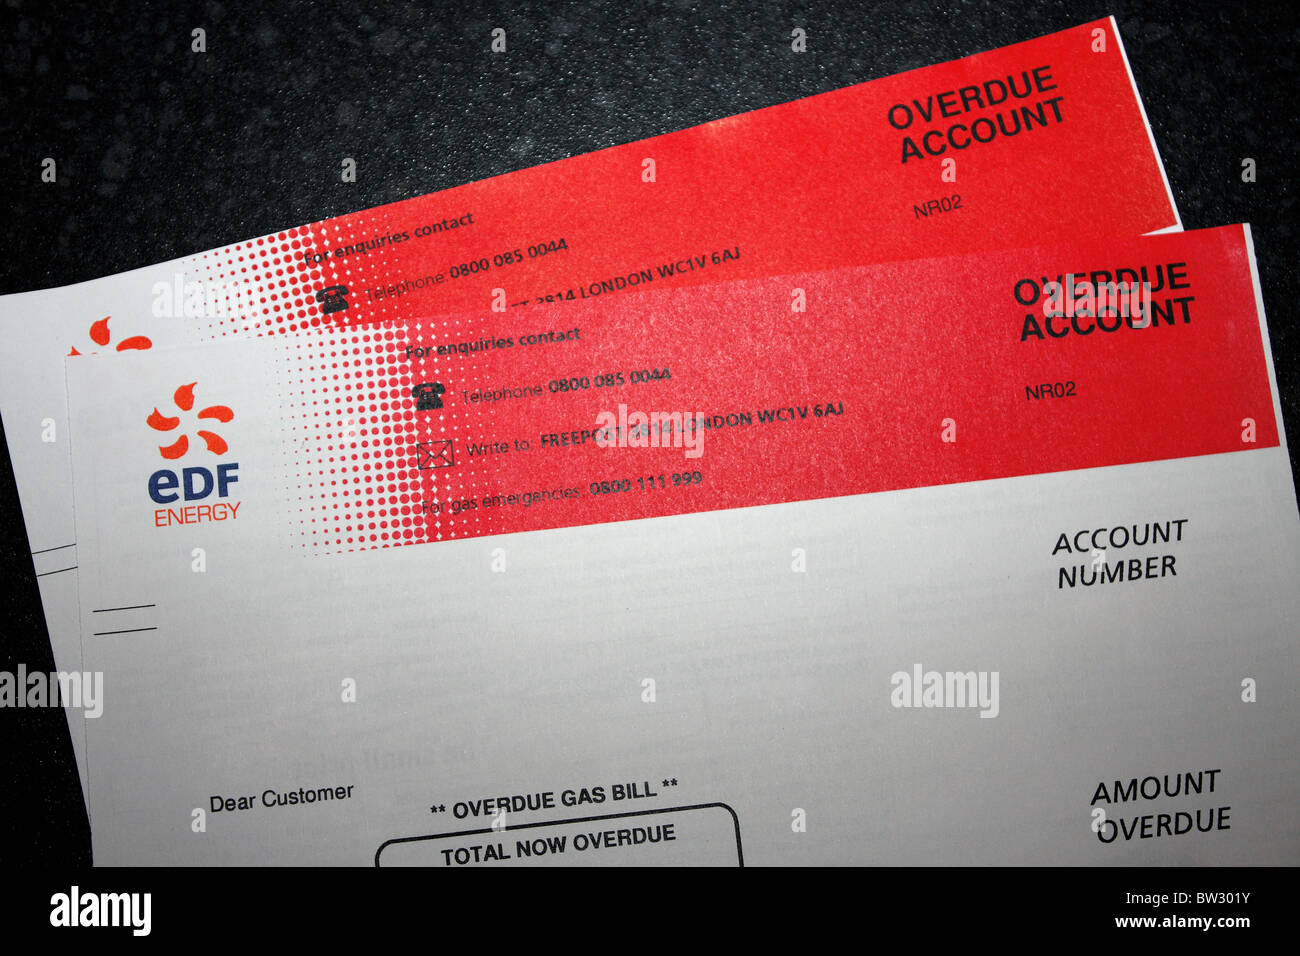 an edf energy bill showing a red overdue account in debt